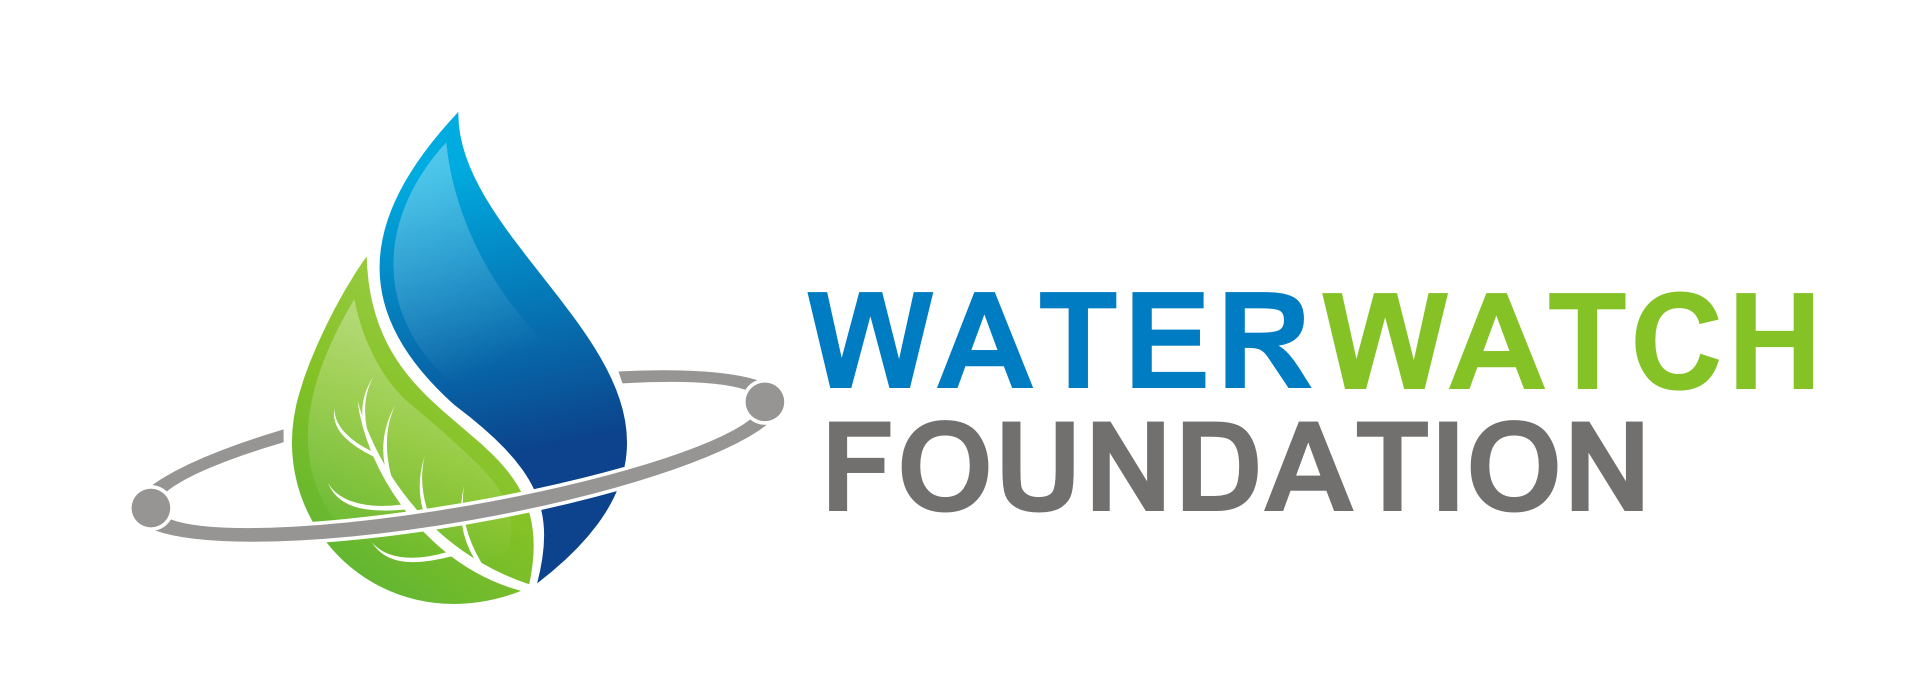 waterwatch foundation